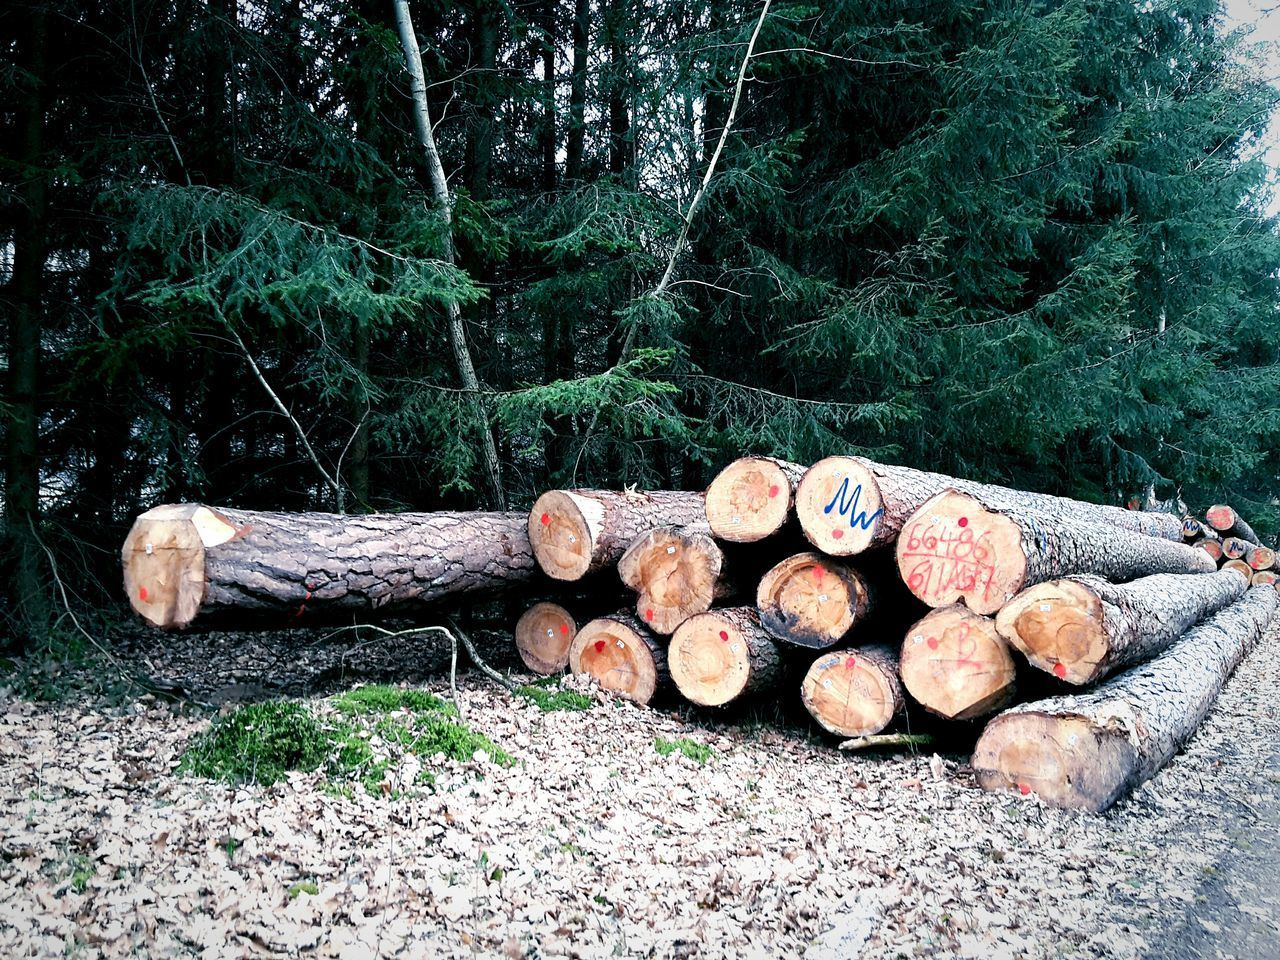 Poor Tree Deadtrees Death Death Forest Murdered The Forest Needs Us Help Trees Nature Forest Photography Forestwalk Forest View Forest Walk Forestry Industry Sad Trees Sad Truth Death Dead Forest Dead Tree Dead Nature Dead Trees Deadwood  Wood Industry